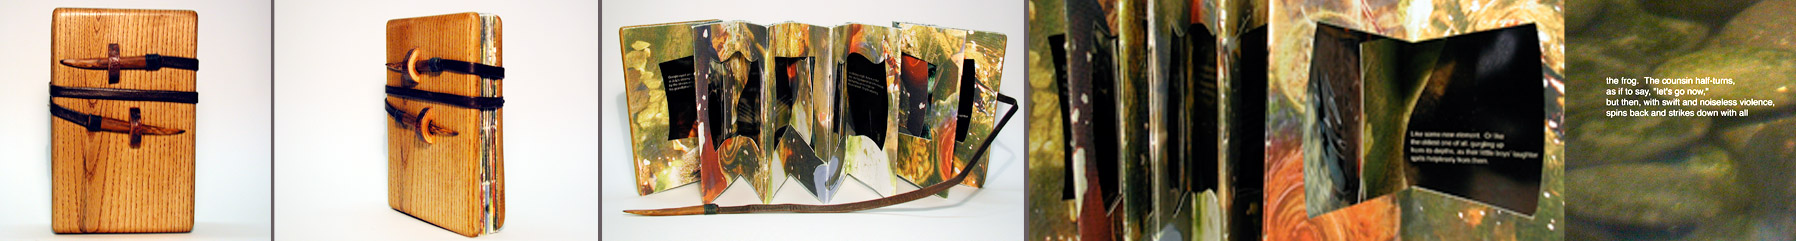 laughter mountain tea studios asheville nc artists books kristy higby